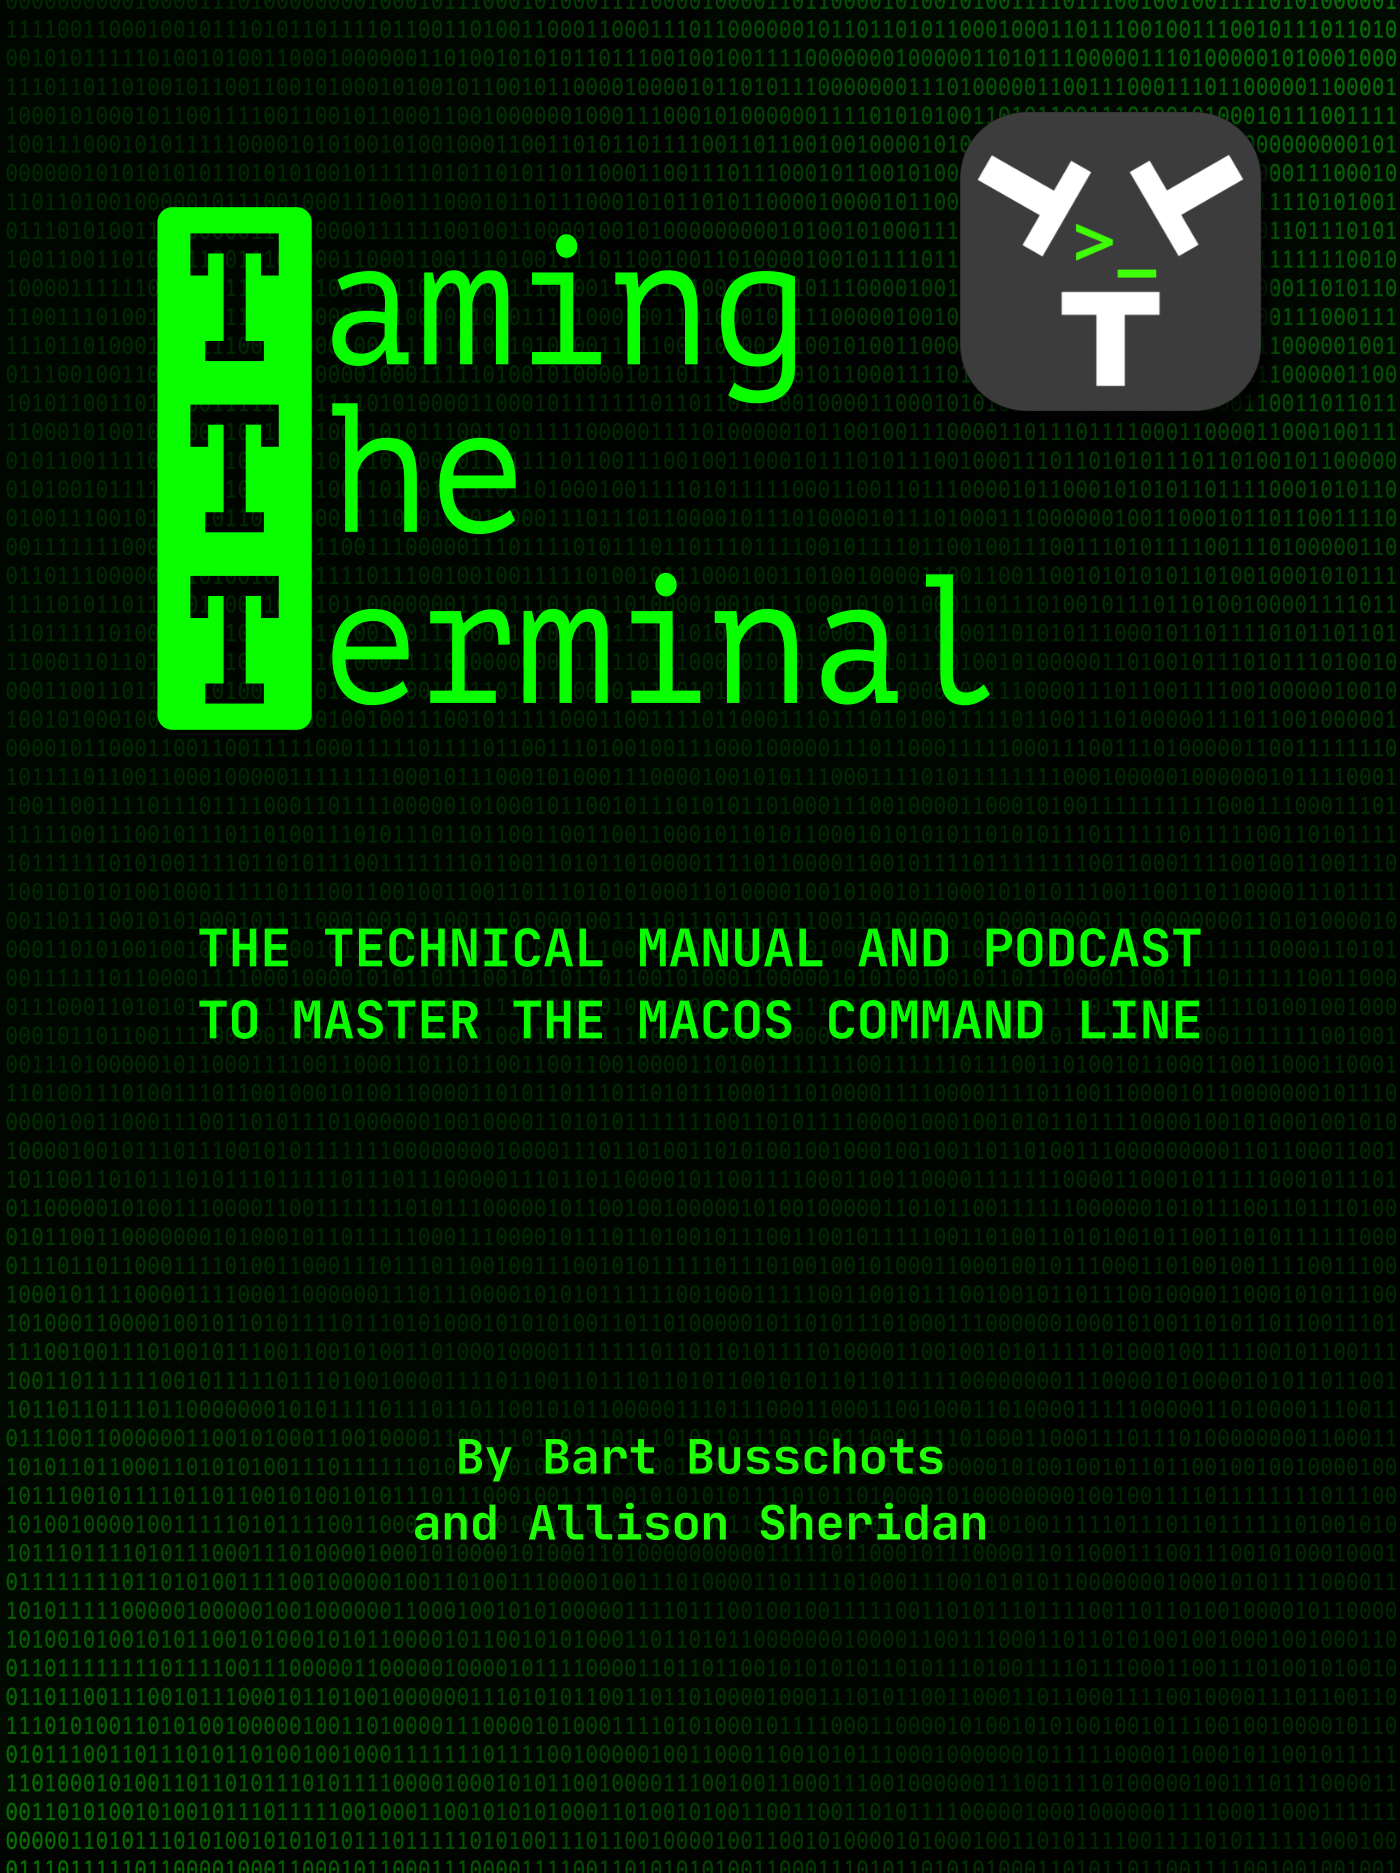 Taming the Terminal Book Cover with green 1s and 0s on black gradient and TTT logo, authors names